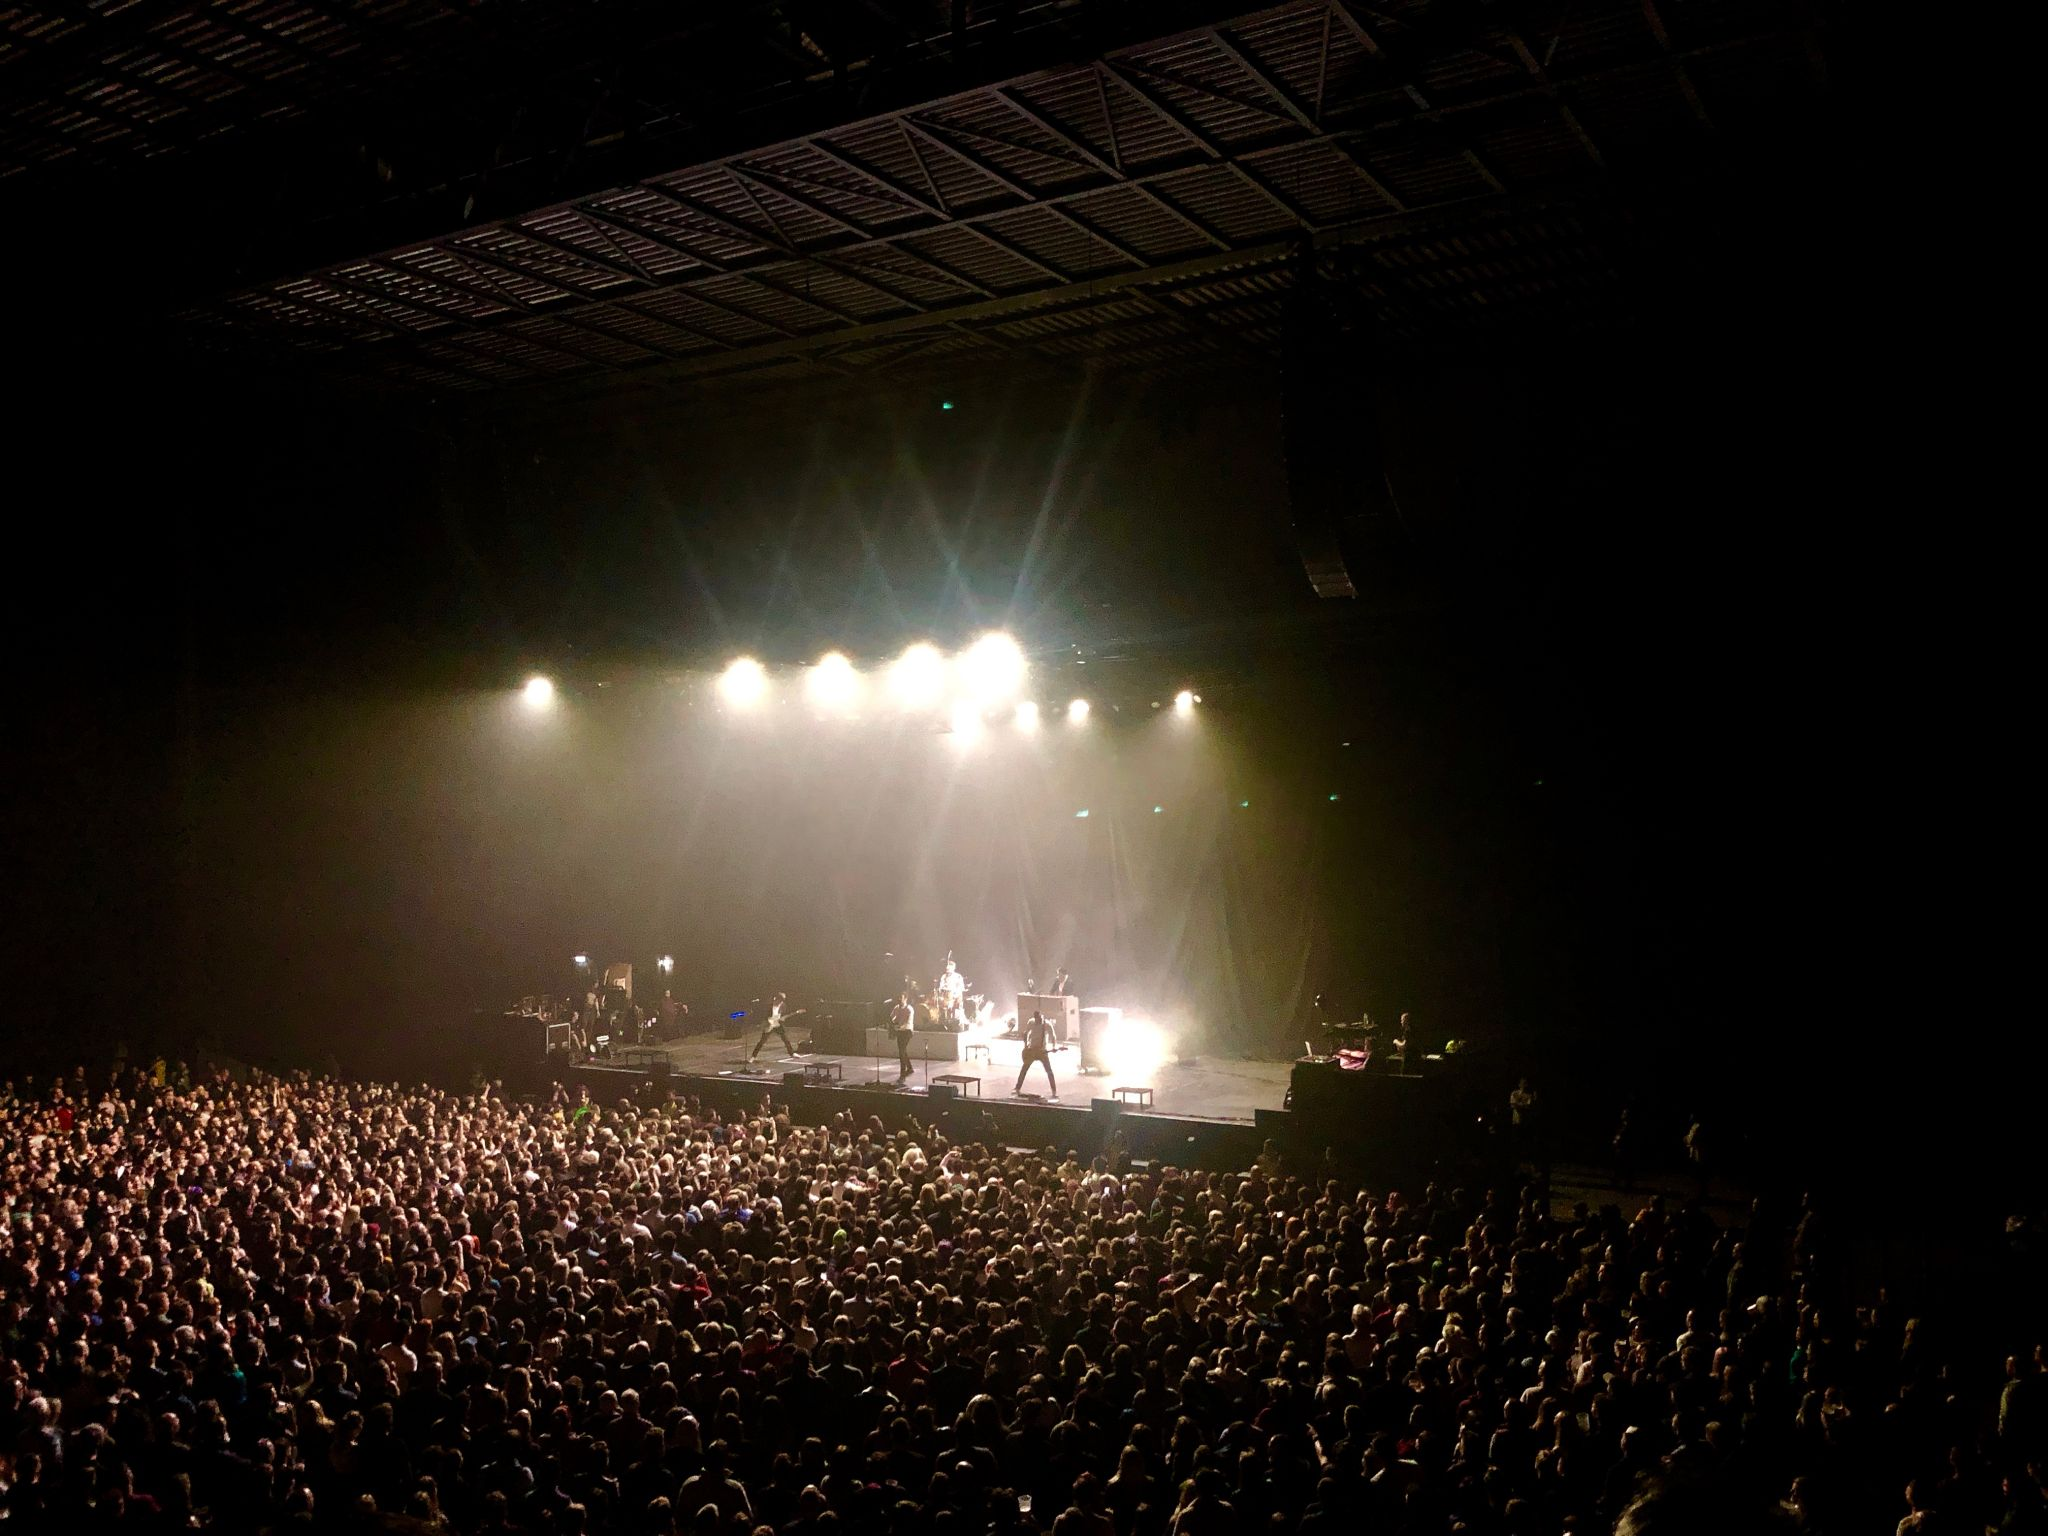 the crowd at the frank turner concert